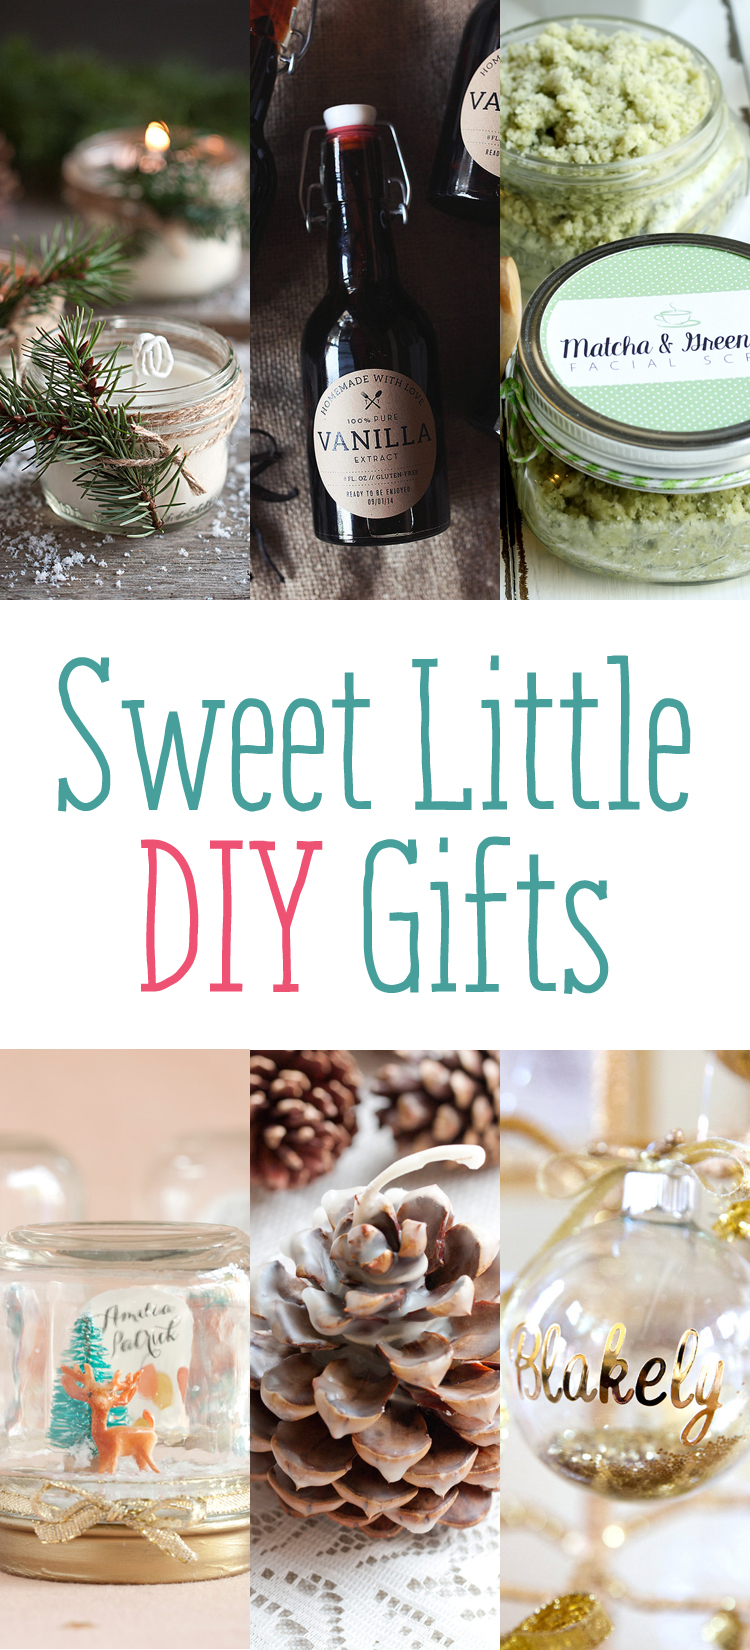 http://thecottagemarket.com/wp-content/uploads/2015/11/LittleGift-tower-0001.jpg